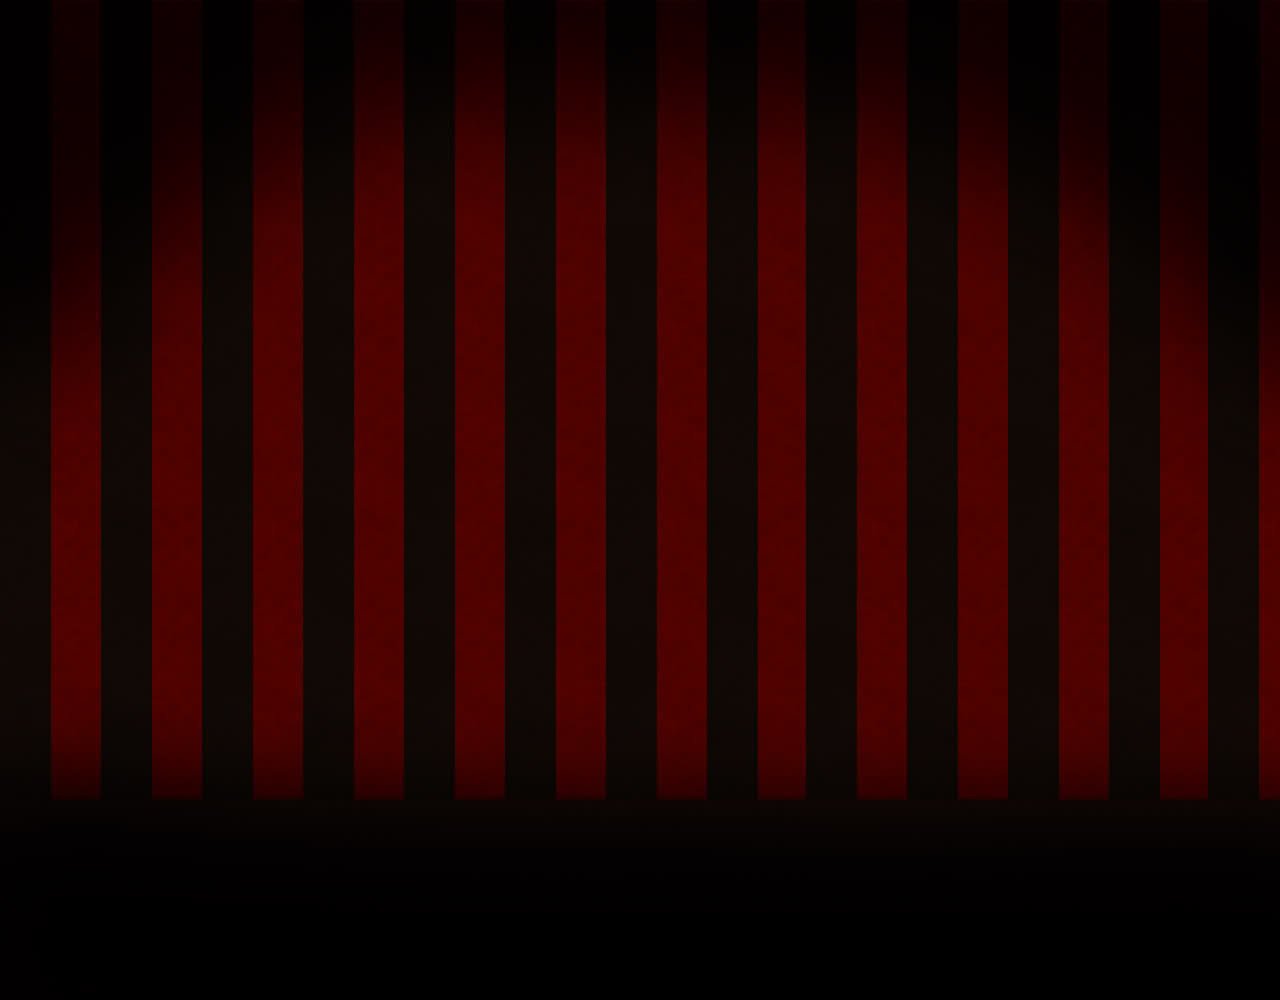 Red And Black Retro Wallpaper 2 Desktop Background ...